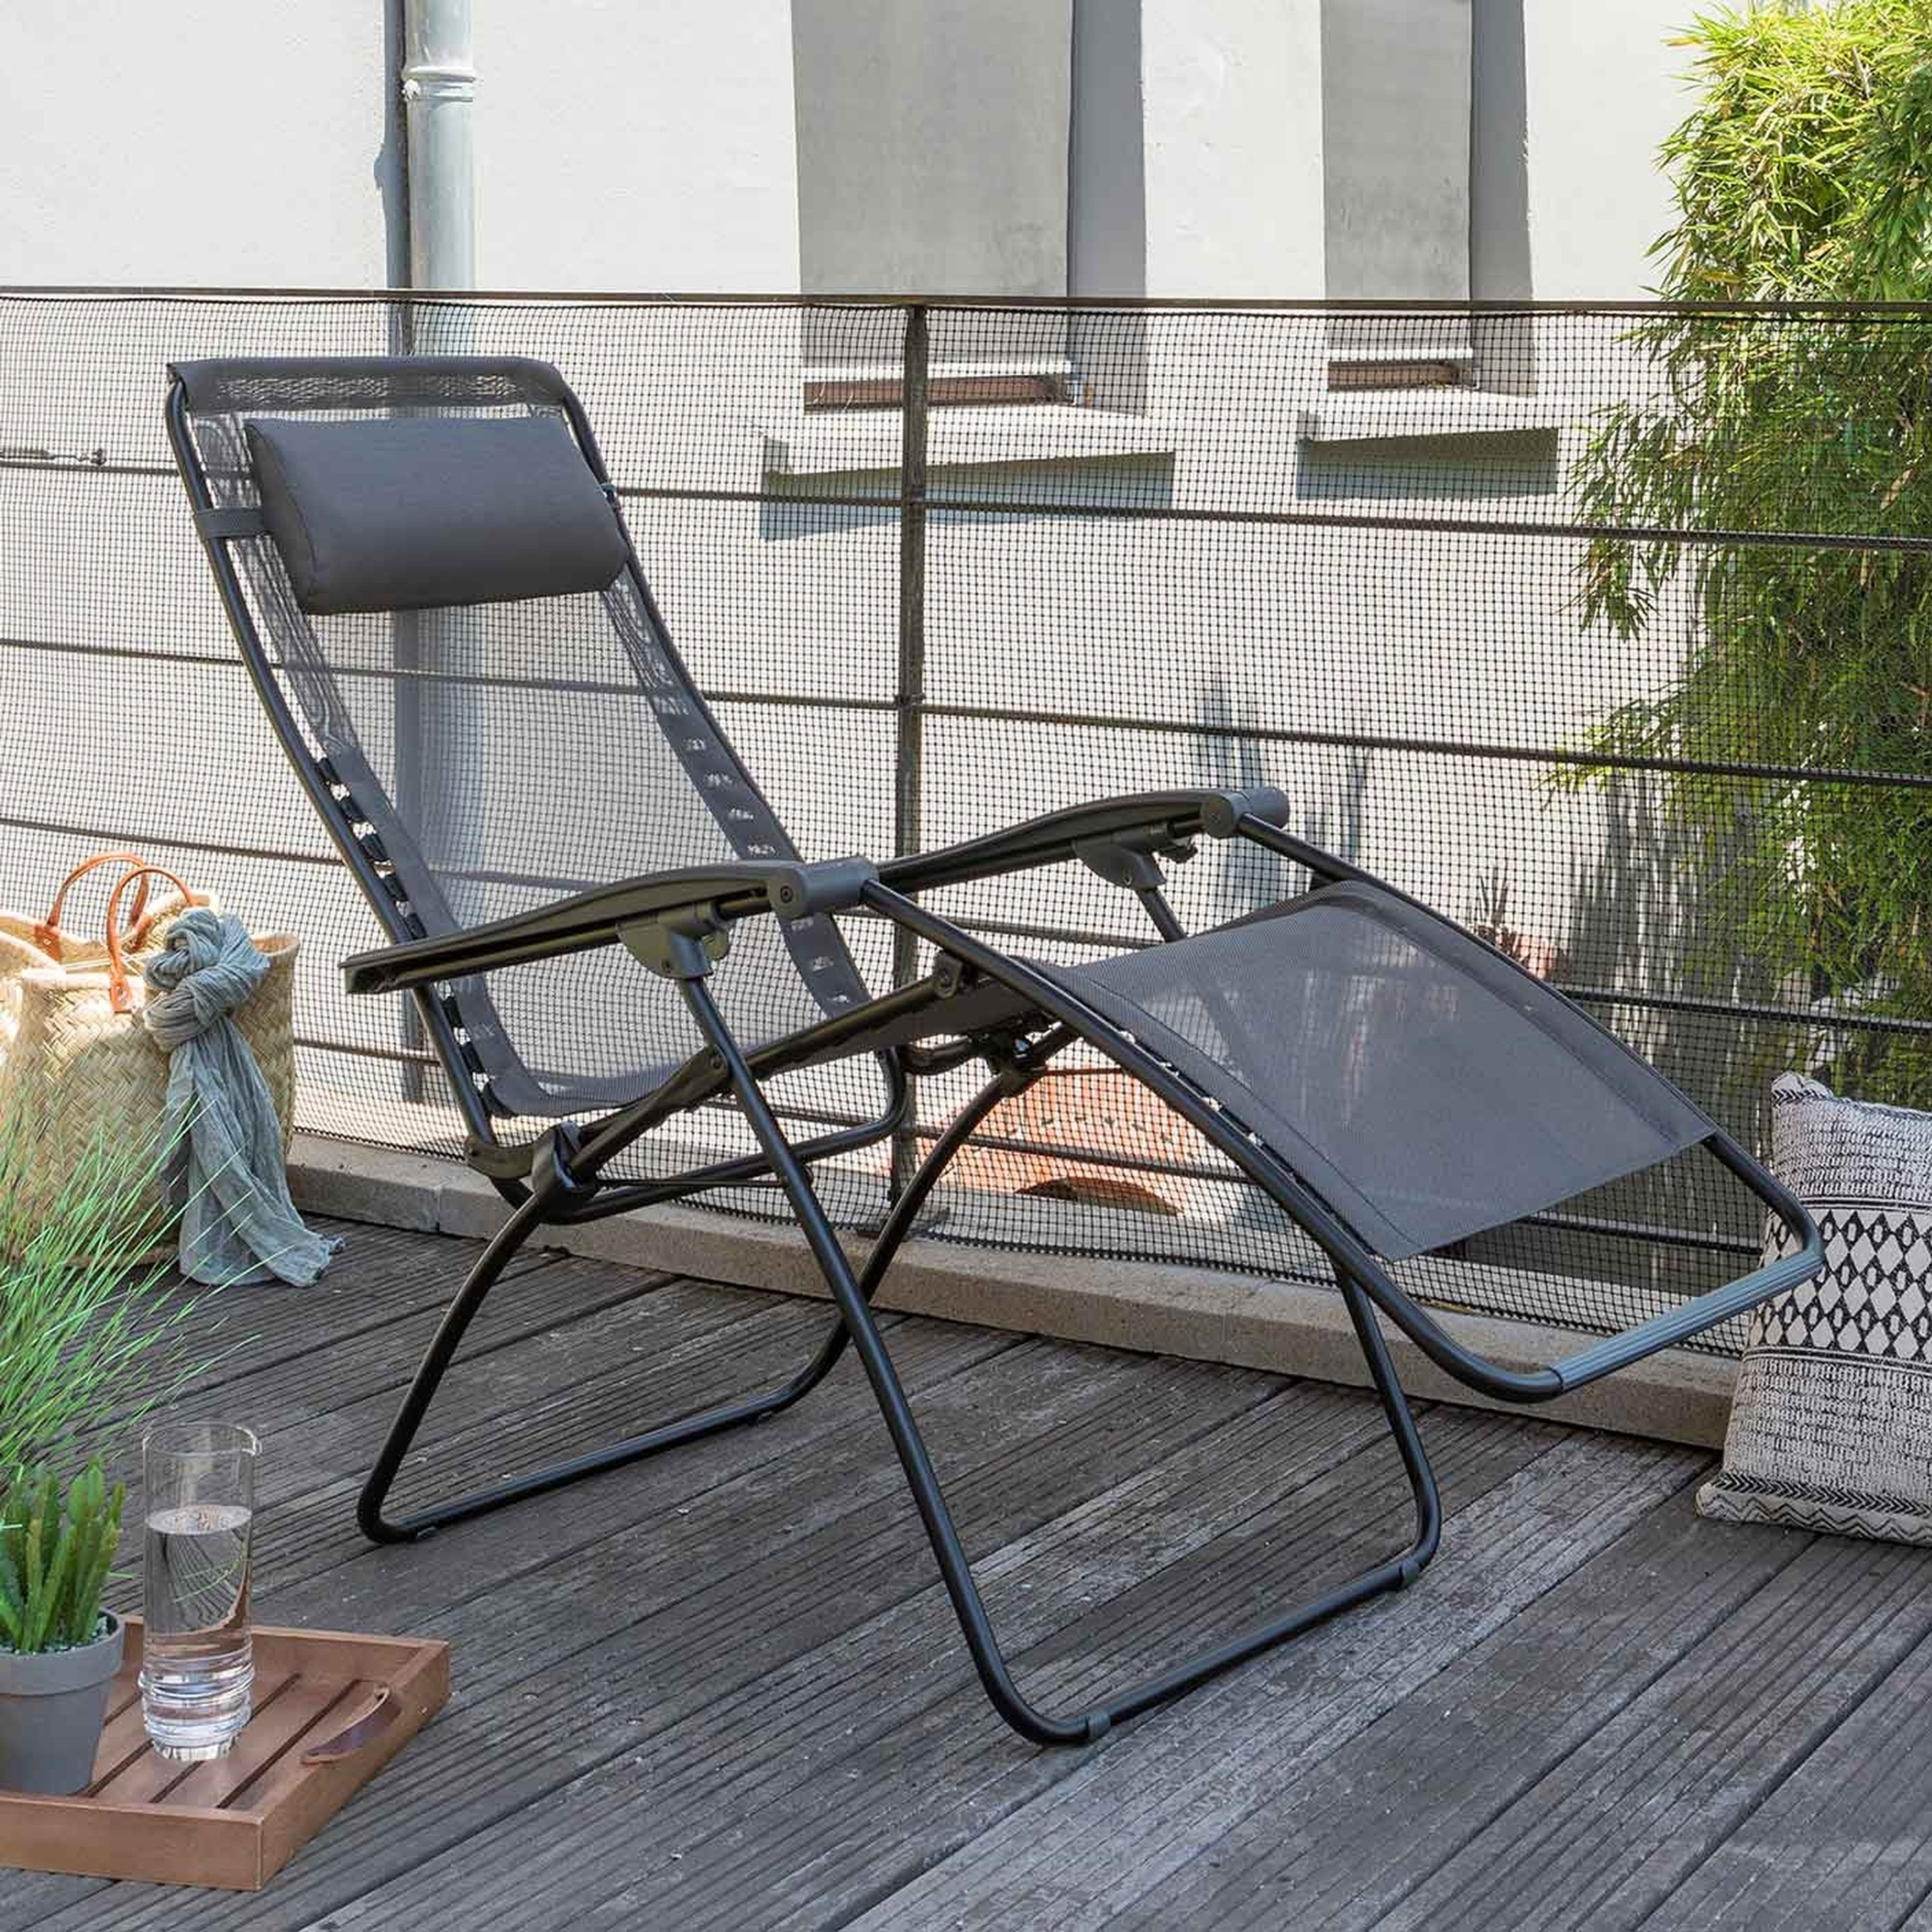 FAUTEUIL RELAX Lafuma Mobilier 2